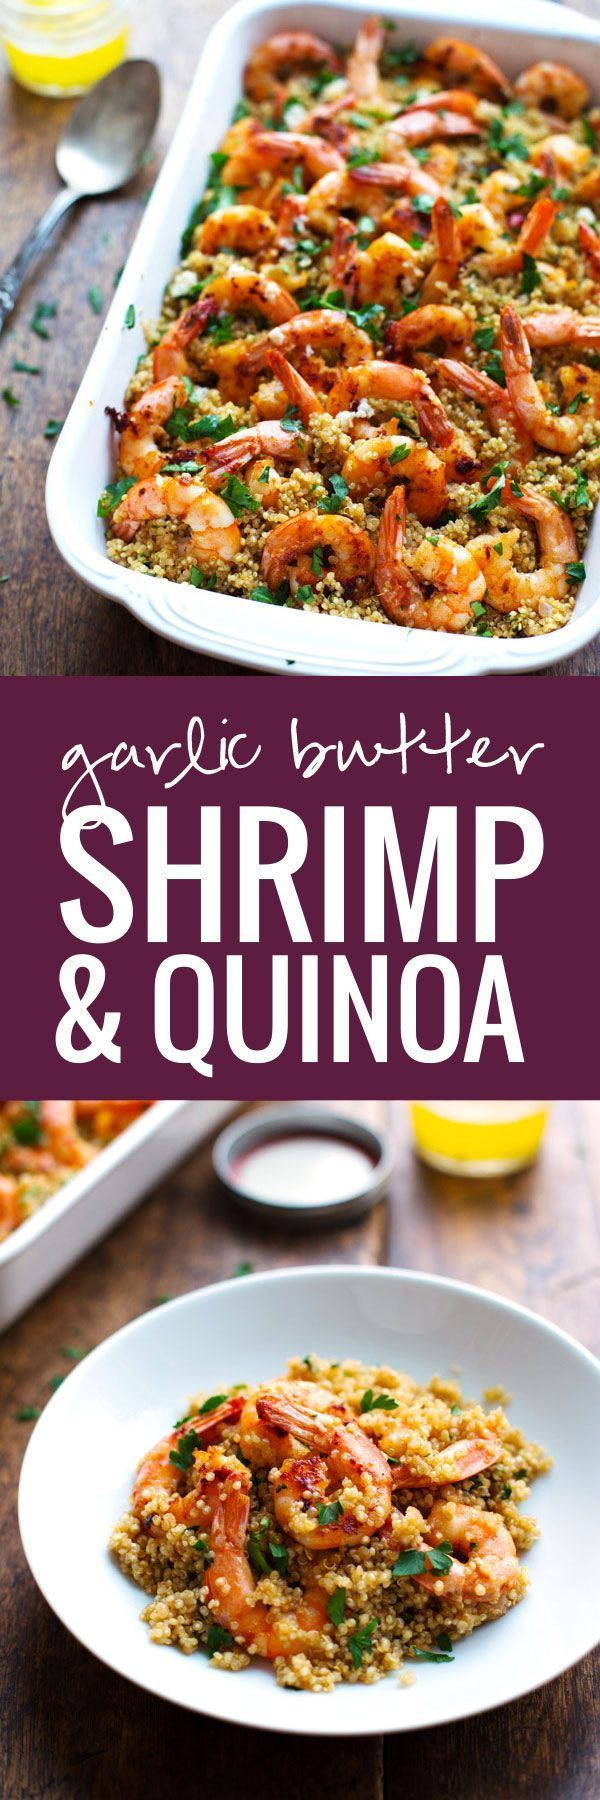 Garlic Butter Shrimp and Quinoa- a simple 30 minute dinner that is elegant and full of flavor. | http://pinchofyum.com